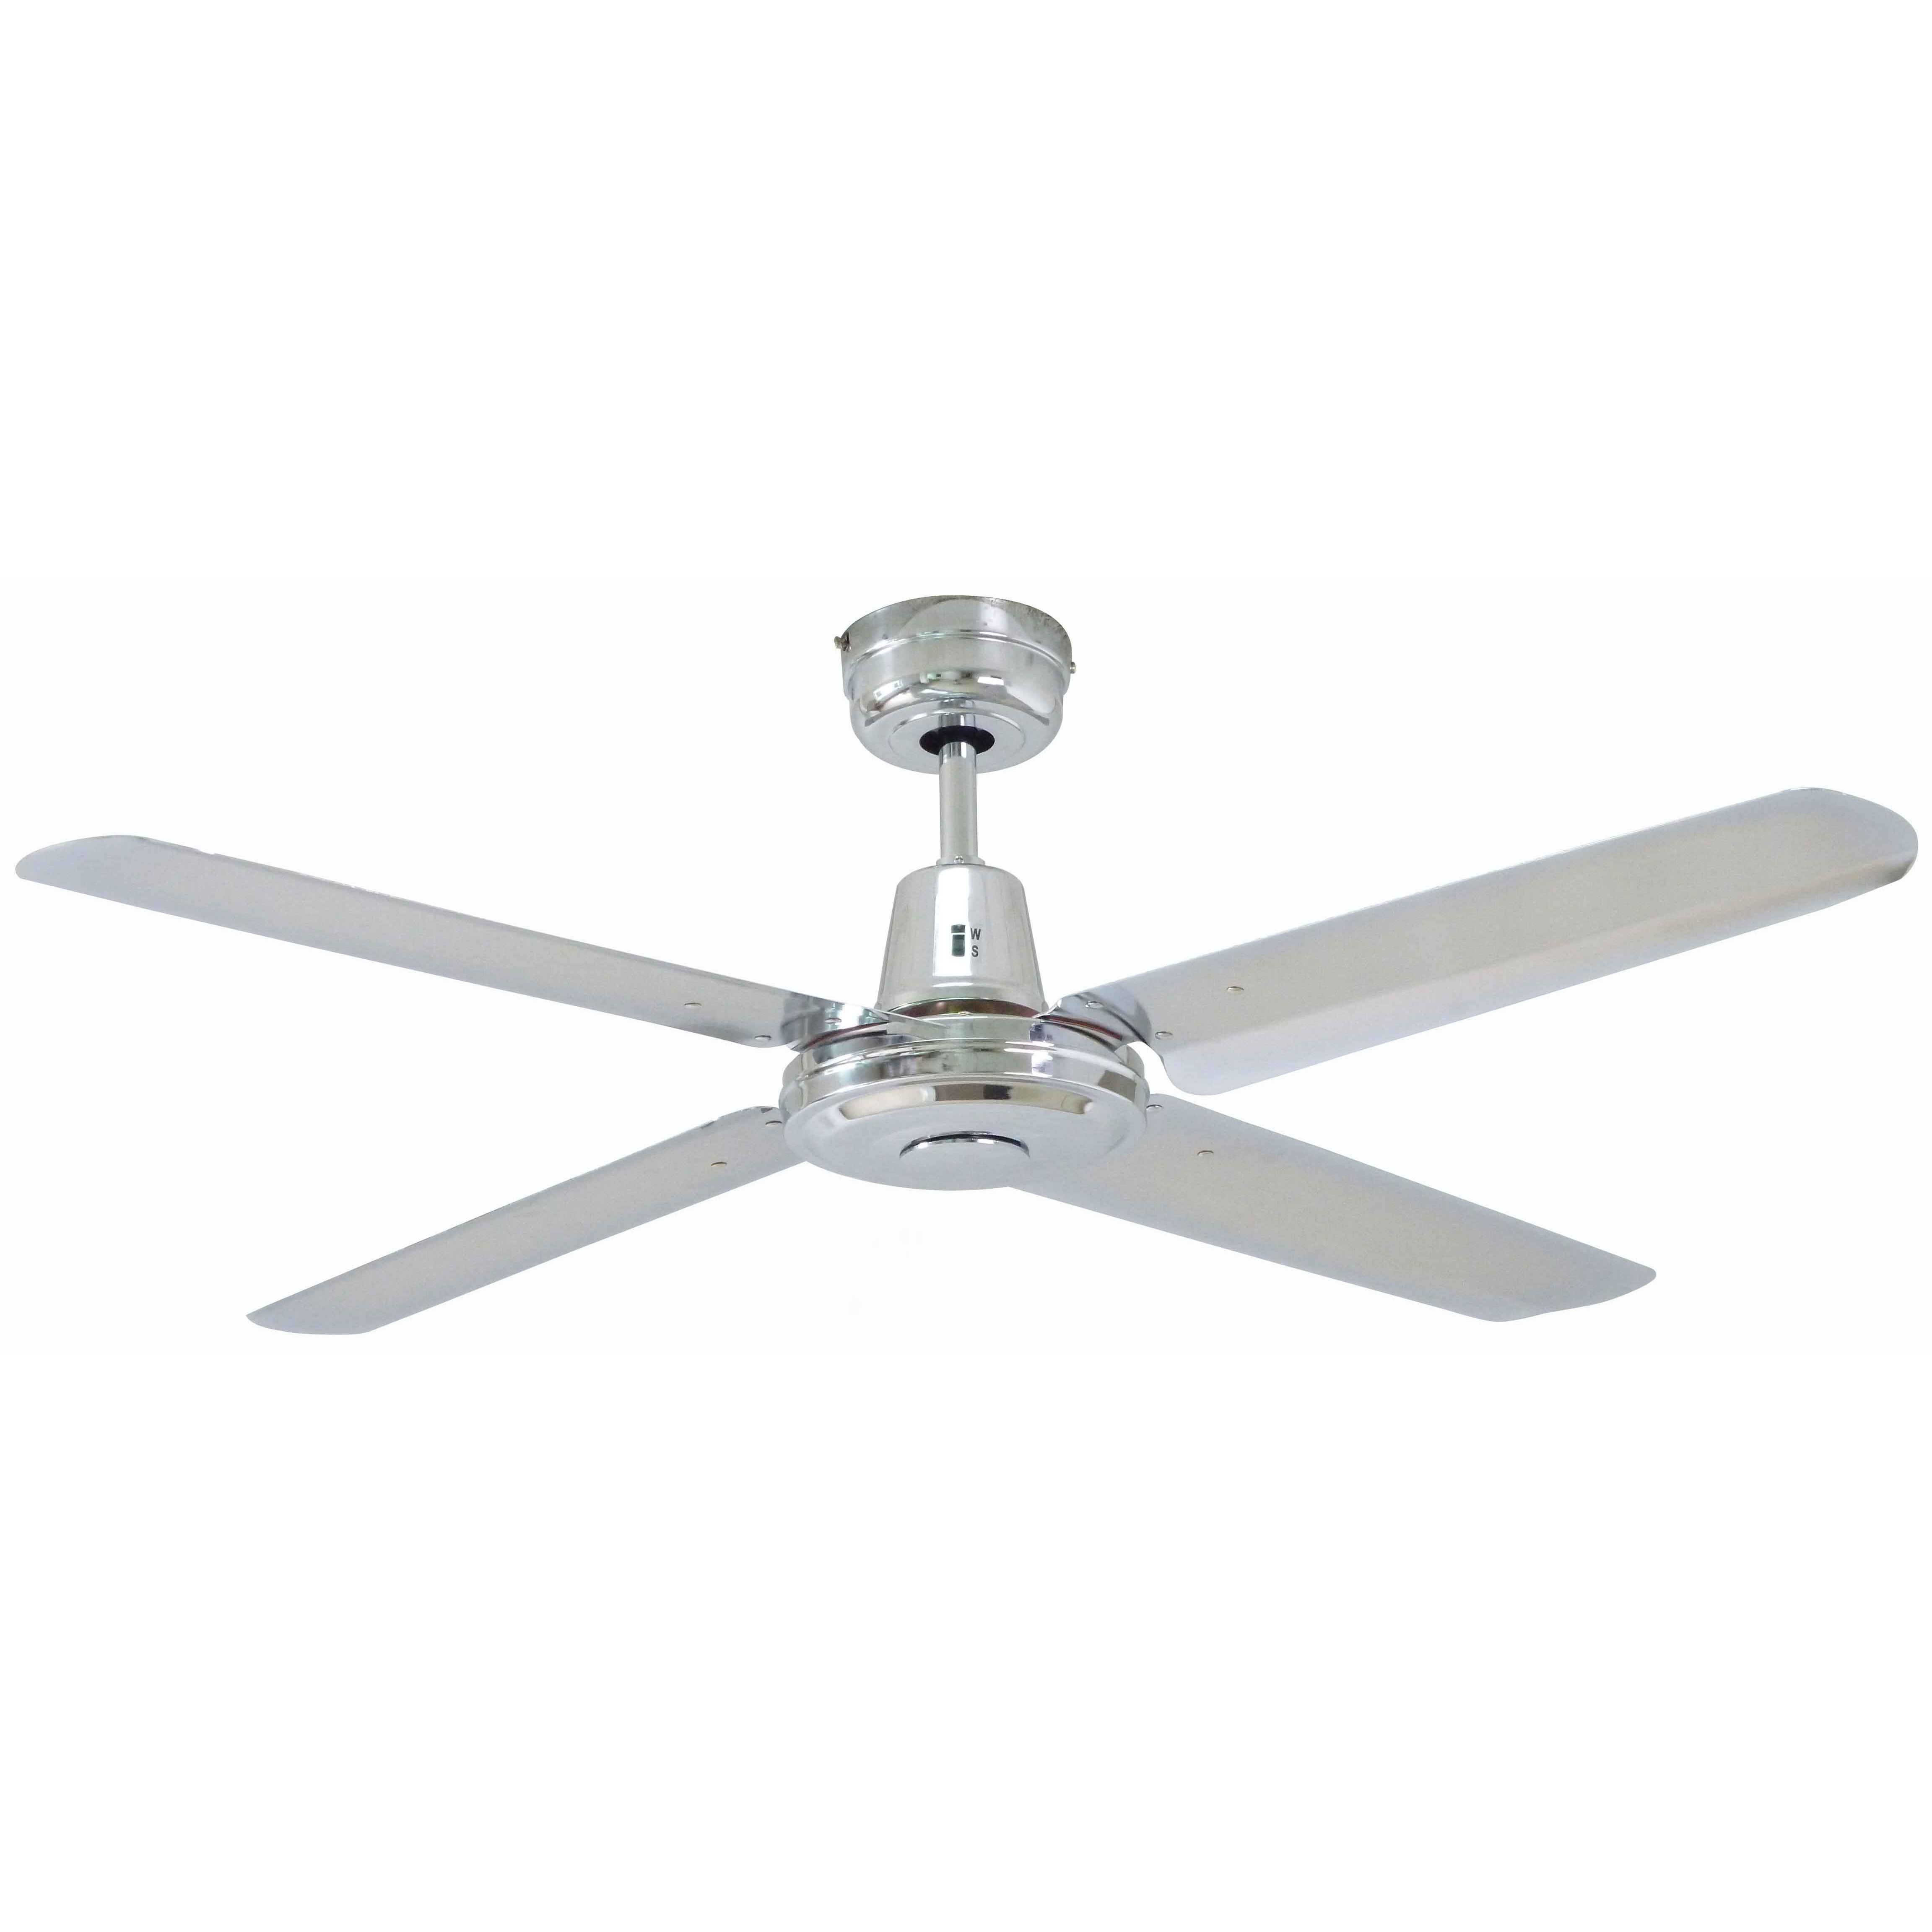 Buy Mercator Swift 48 Brushed Chrome Metal Blades Ac Ceiling Fan Ceiling Fan Metal Ceiling Fan